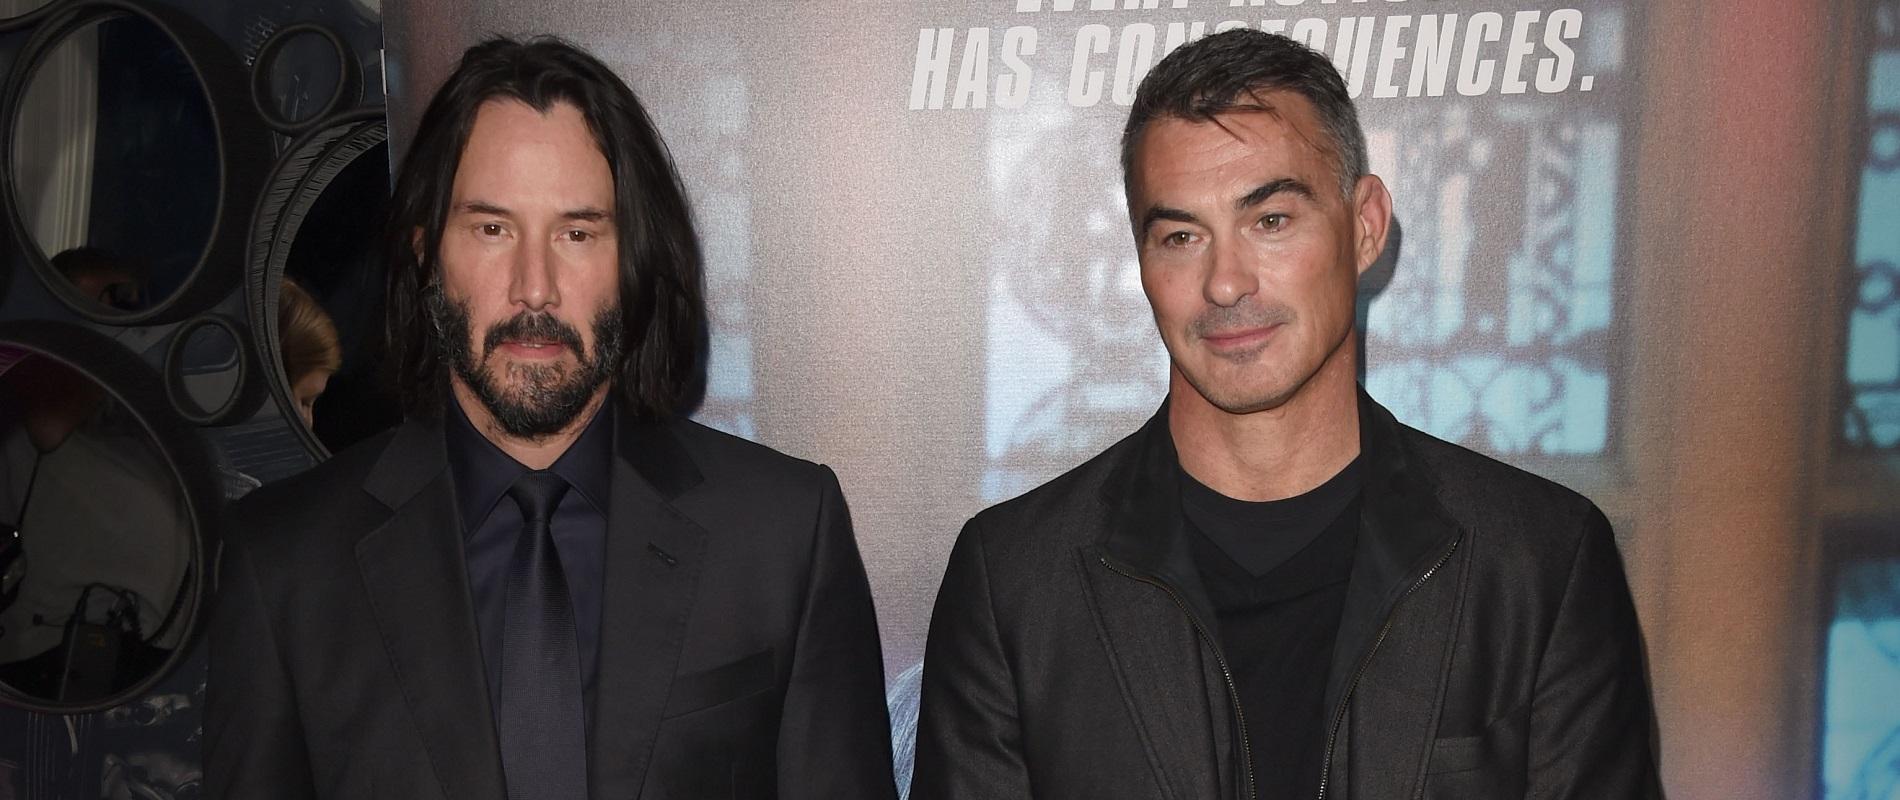 Jeff Simon confesses he is 'inordinately fond of the whole 'John Wick' series from star Keanu Reeves, left, and filmmaker Chad Stahelski. (Photo by Stuart C. Wilson/Getty Images)